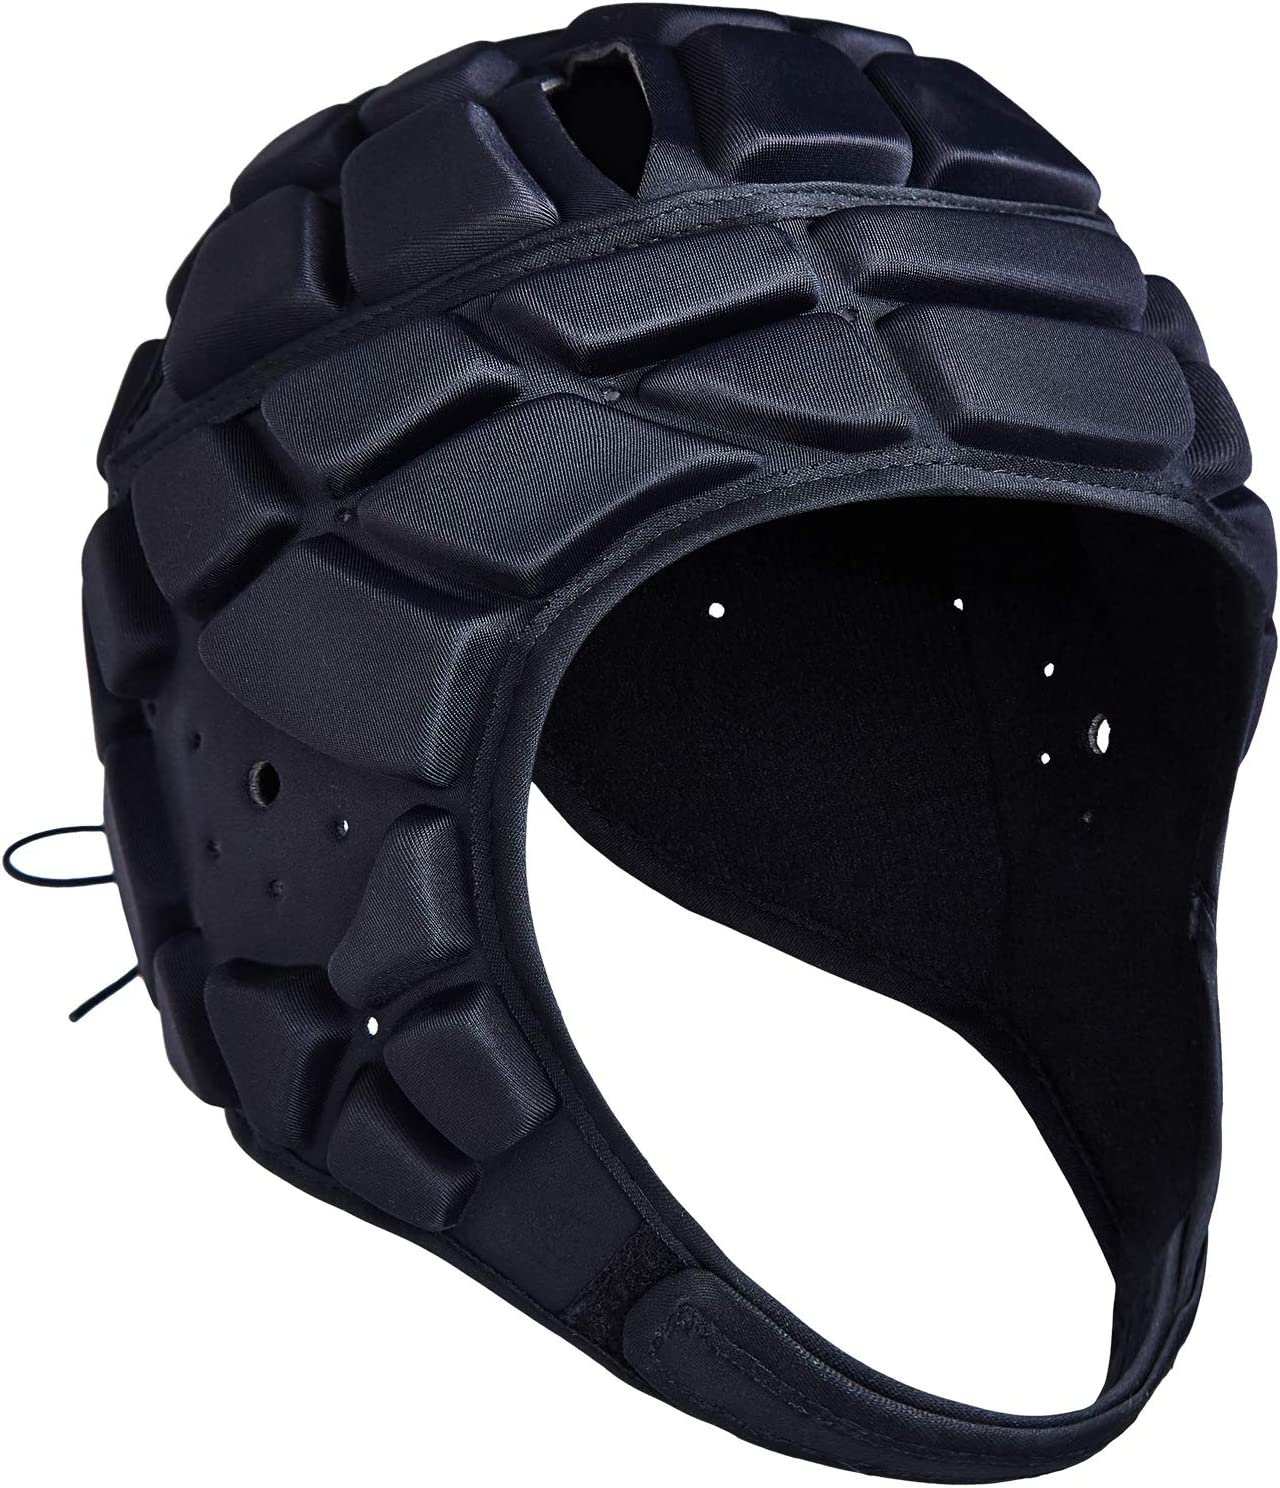 COOLOMG Soft Padded Headgear 7v7 Soft Shell Head Protector Goalkeeper Adjustable Soccer Goalie Helmet Support Rugby Flag Football Helmet Youth Adults : Sports & Outdoors